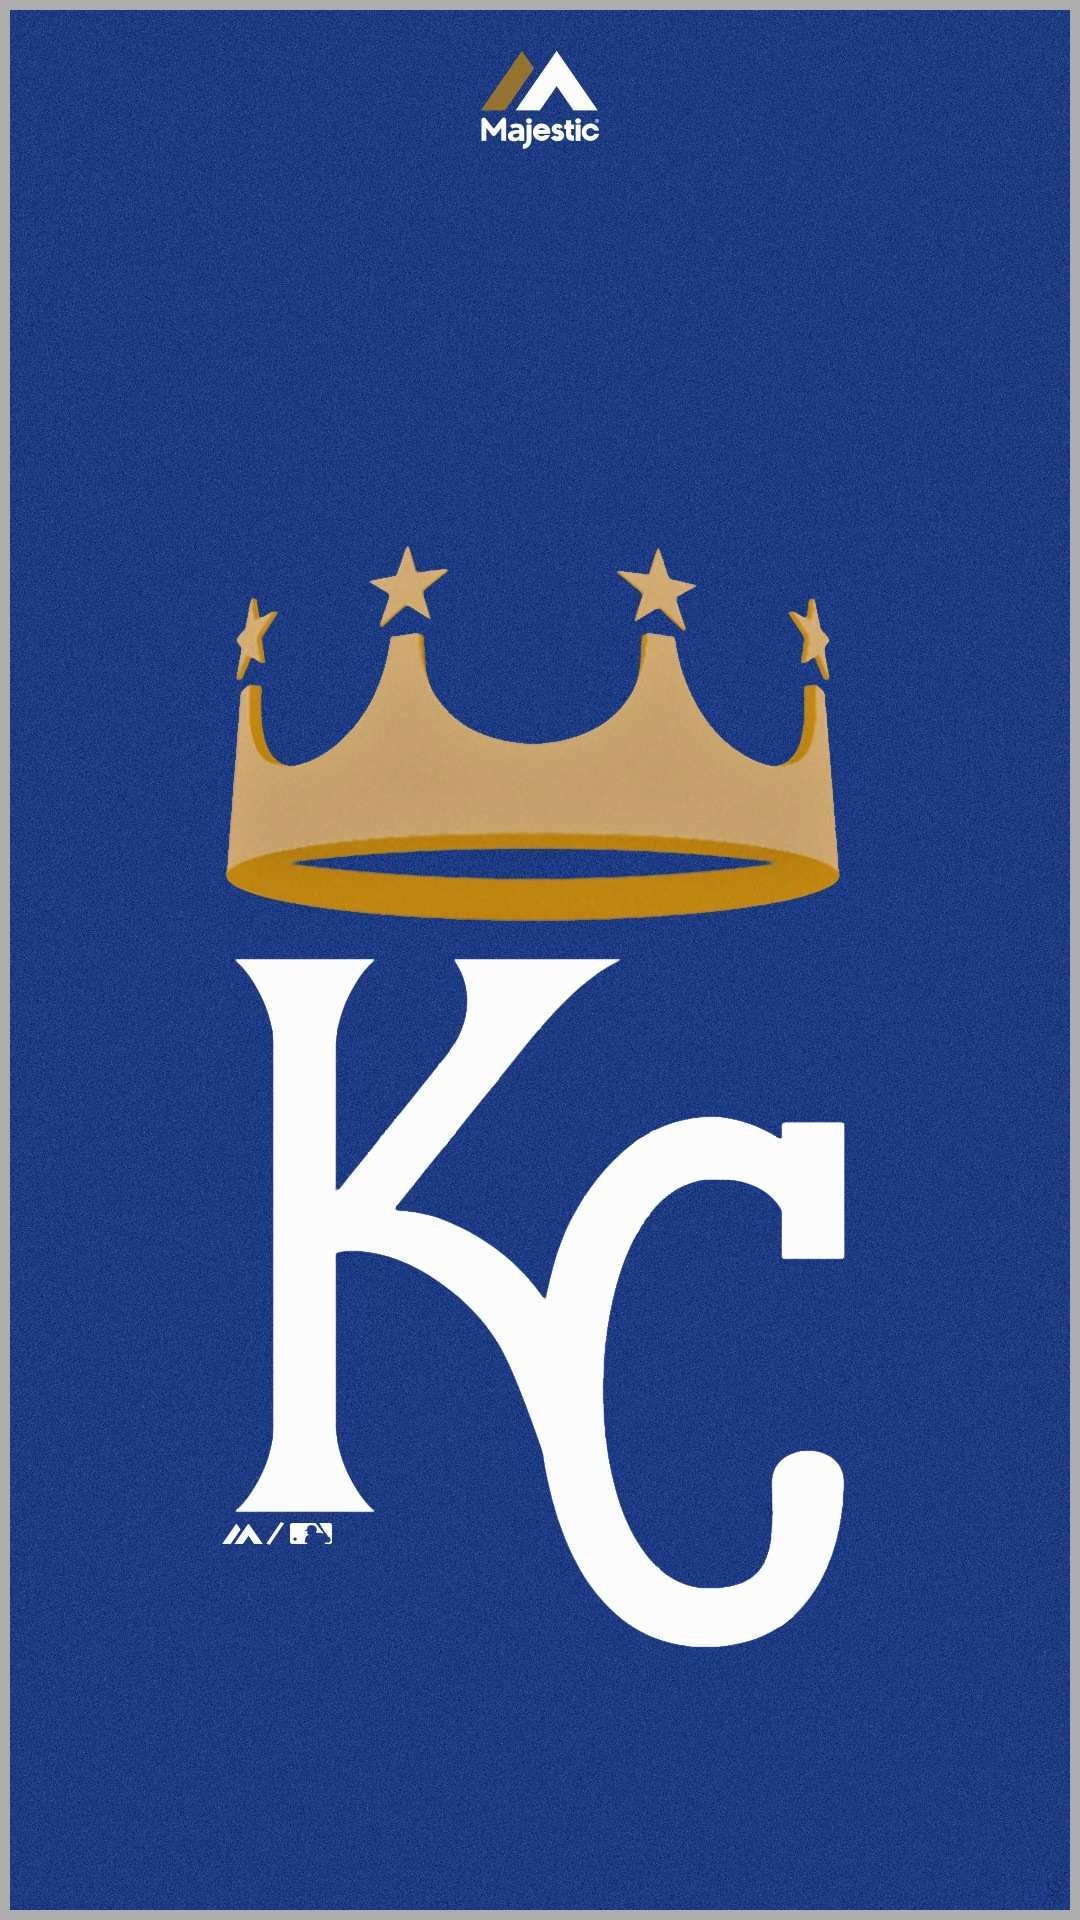 Kansas City Royals Wallpaper 2018 (76+ images)